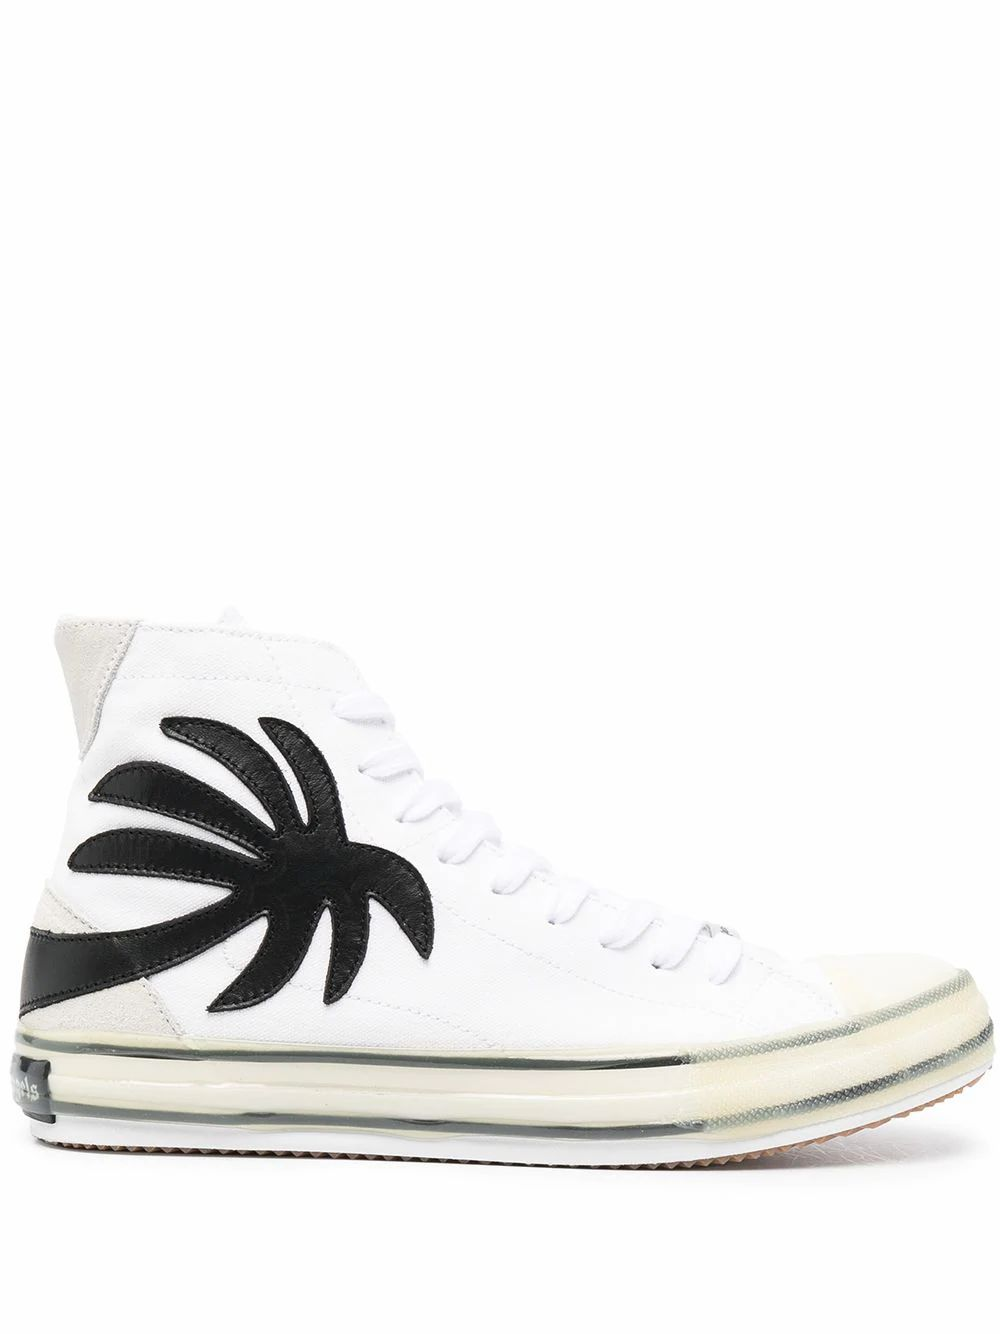 Palm Angels PALM ANGELS MEN'S WHITE COTTON HI TOP SNEAKERS